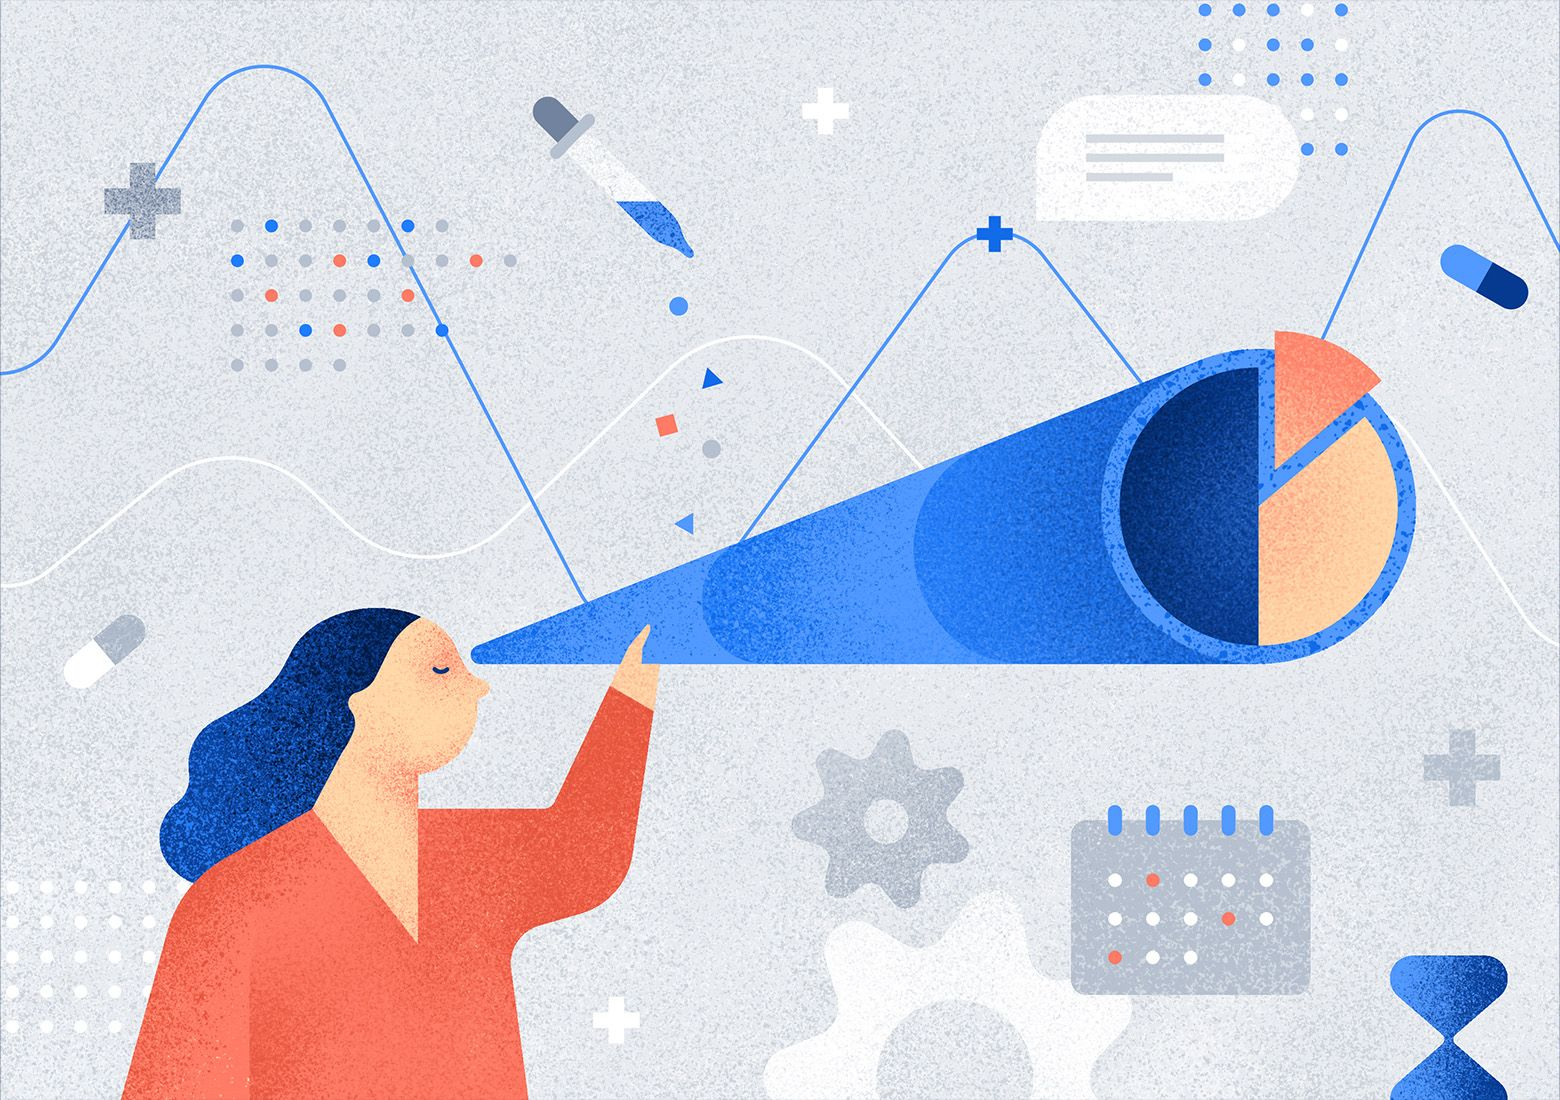 Observing healthcare KPIs will make it easier for you to track your project's goals and progress. Illustration by Aga Więckowska.